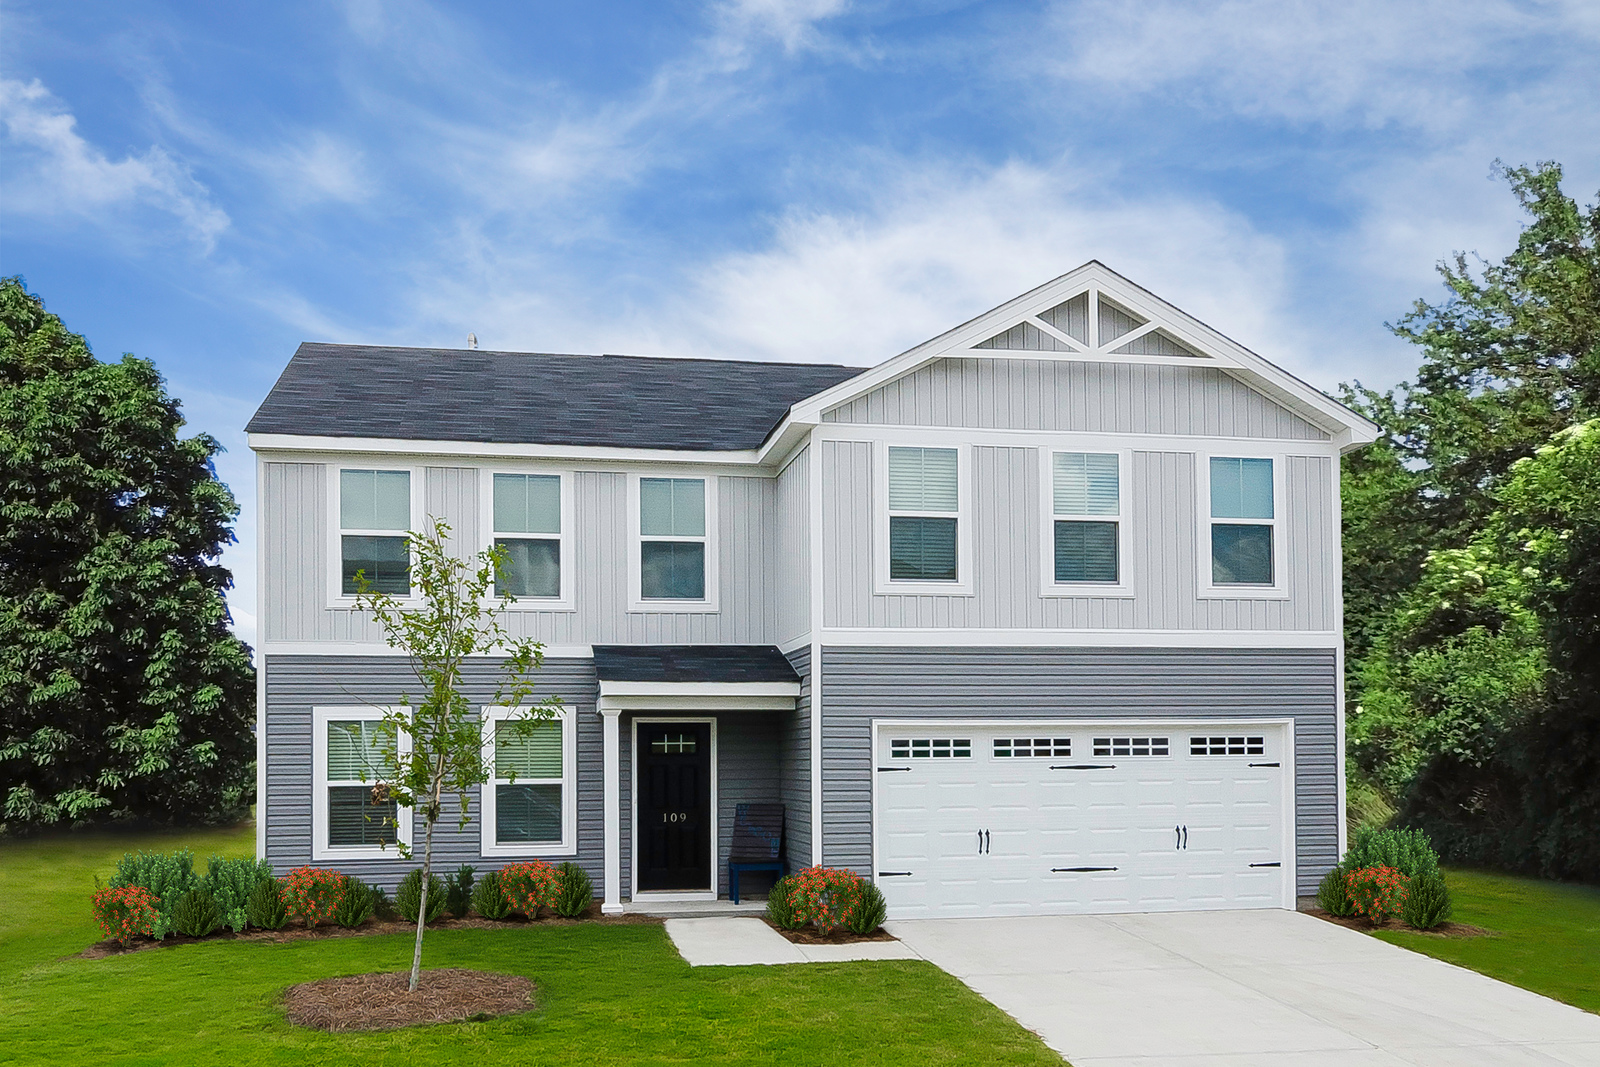 Marvelous New Homes For Sale At Westfield Lakes In Westfield Township Home Interior And Landscaping Ologienasavecom